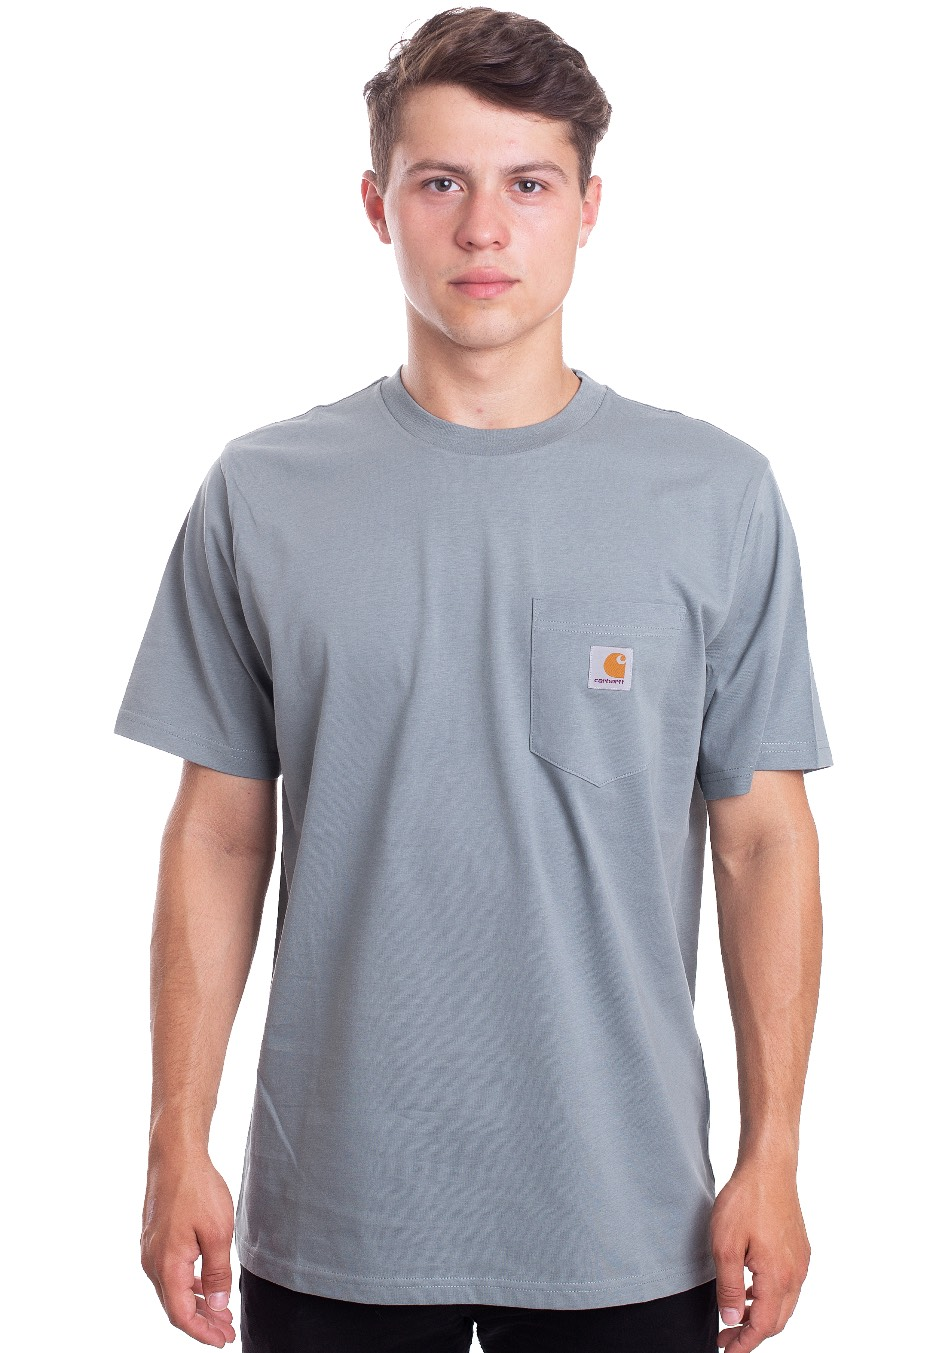 Carhartt WIP Pocket Cloudy T Shirt